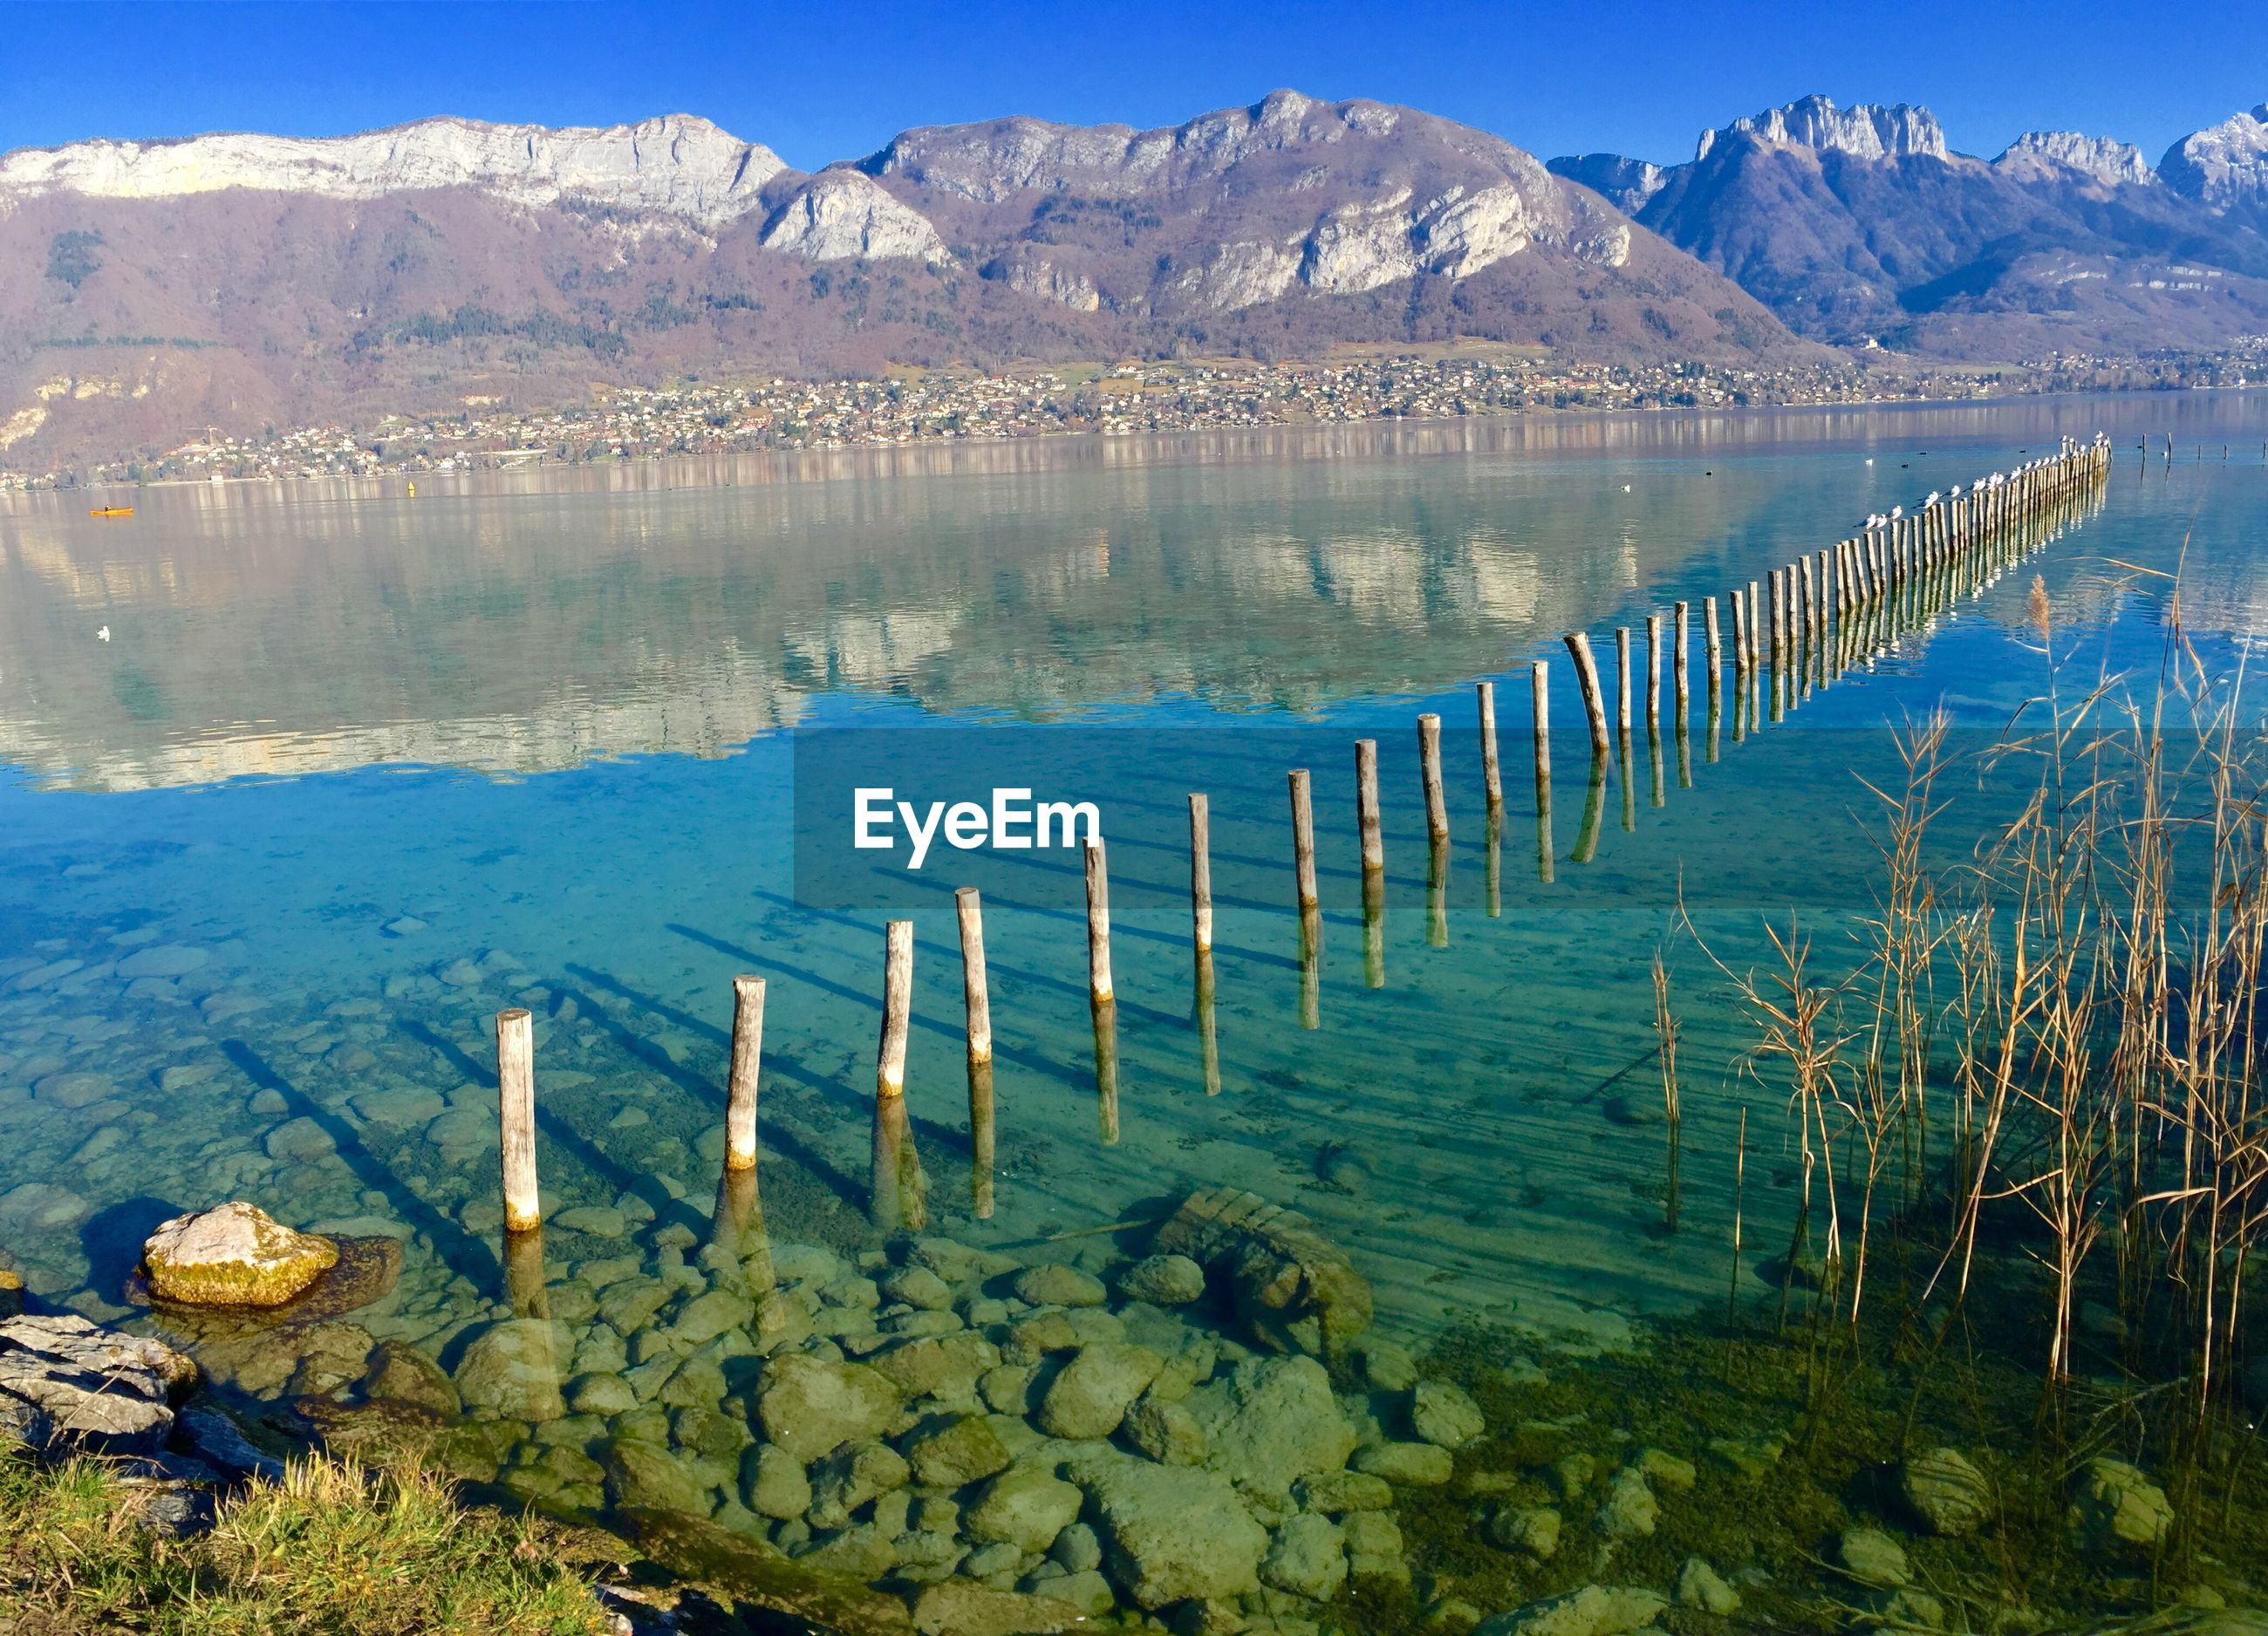 Wooden posts in lake against mountains